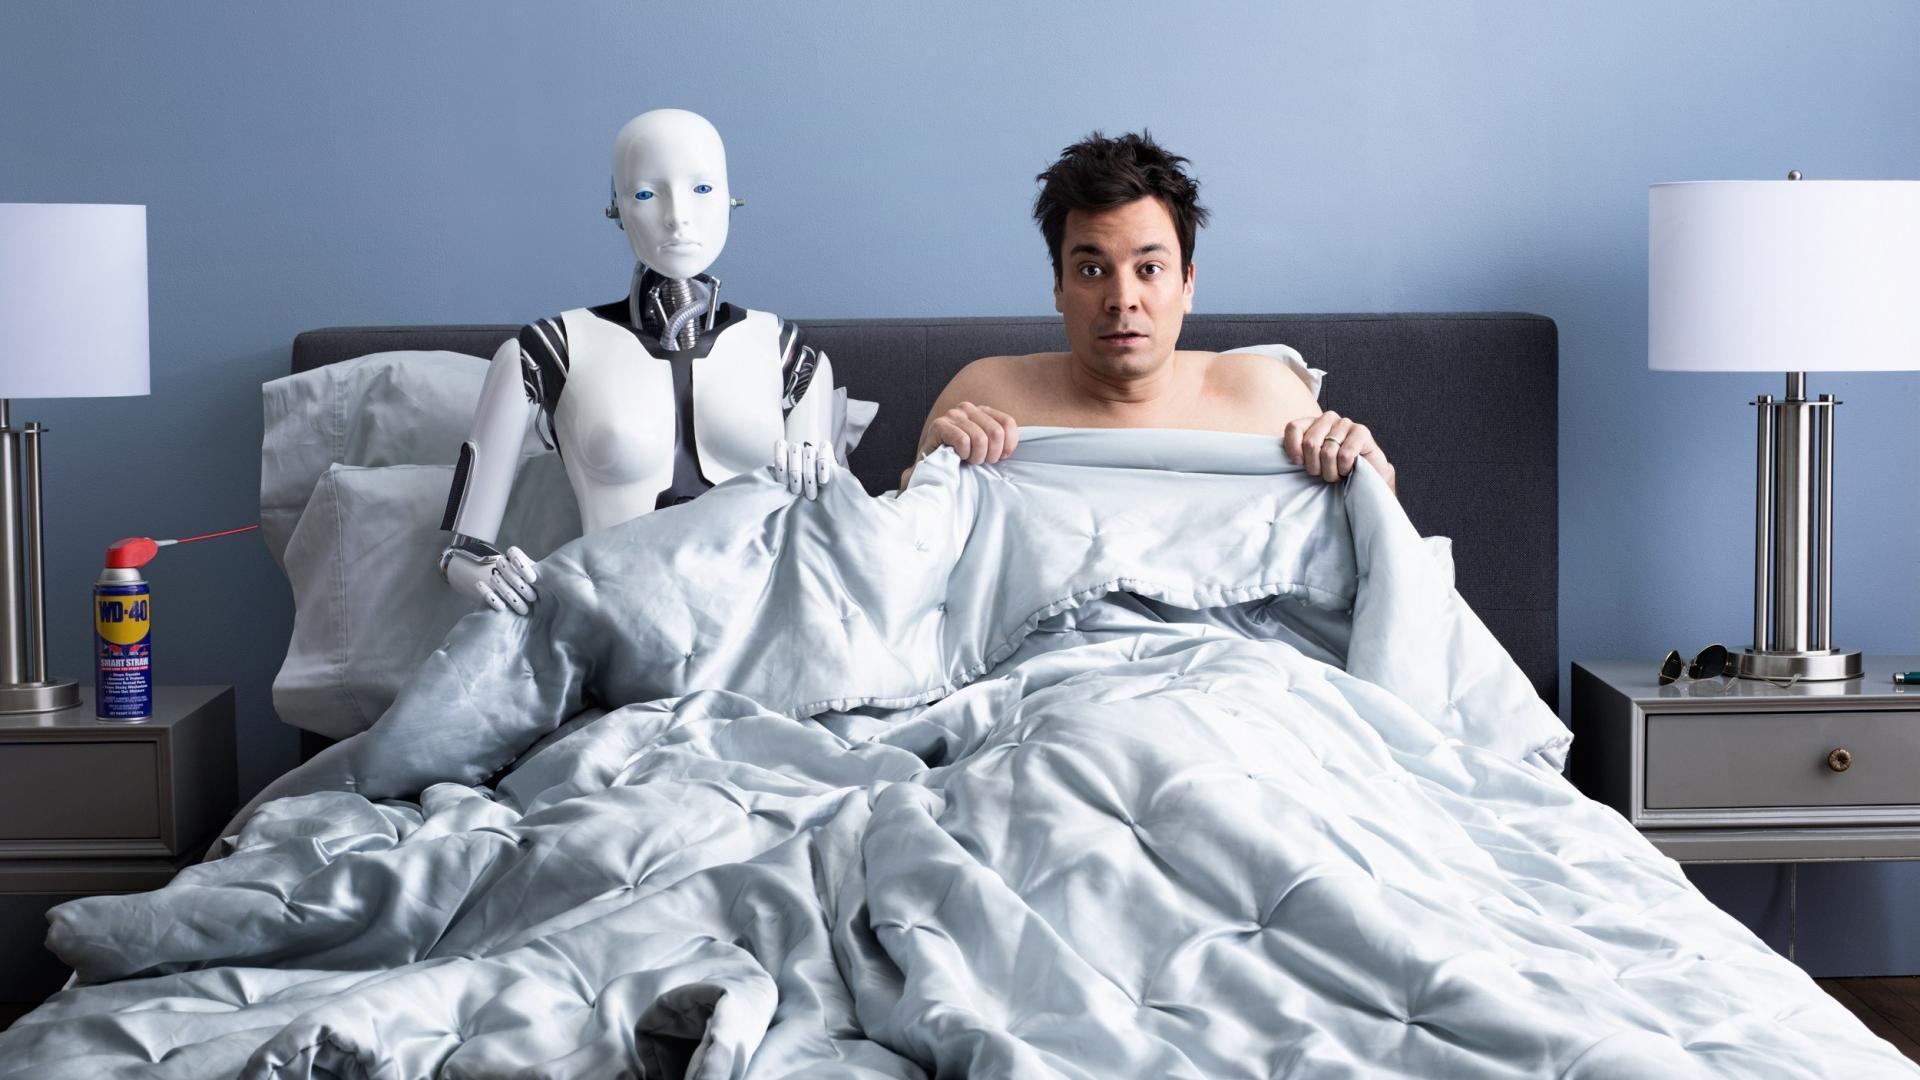 Bedroom beds funny jimmy fallon men wallpapers